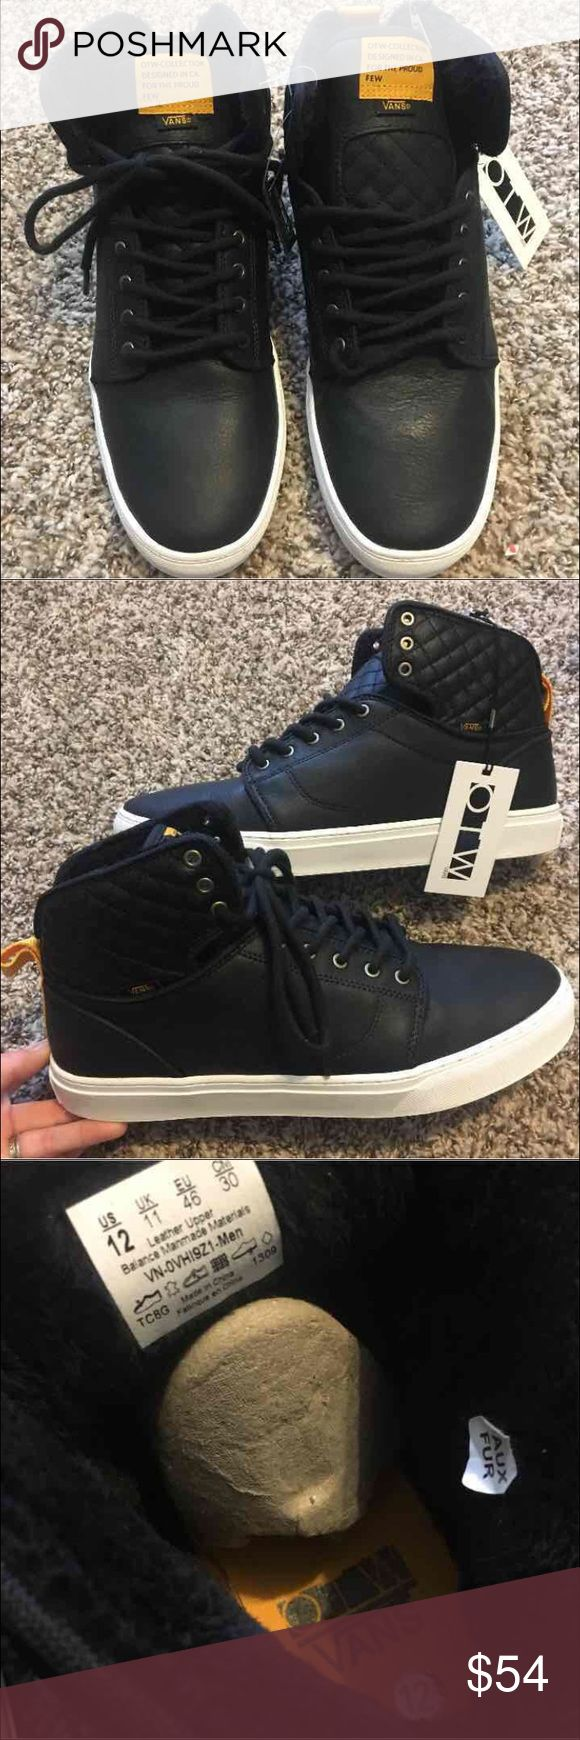 *NIB* RARE 👀 Vans Leather Alomar Hi Top OTW Never worn! Comes with original box! Real Leather. OTW Collection.  This is a dead stock item! No longer in production!  Originally $120!   55%OFF!   RARE FIND IN UNWORN CONDITION!   Price is negotiable to an extent! :)  Best offers only please!                                Check out the rest of my page for MORE Vans shoe Styles for sale! I love to bundle and save on shipping, comment to find out more! Vans Shoes